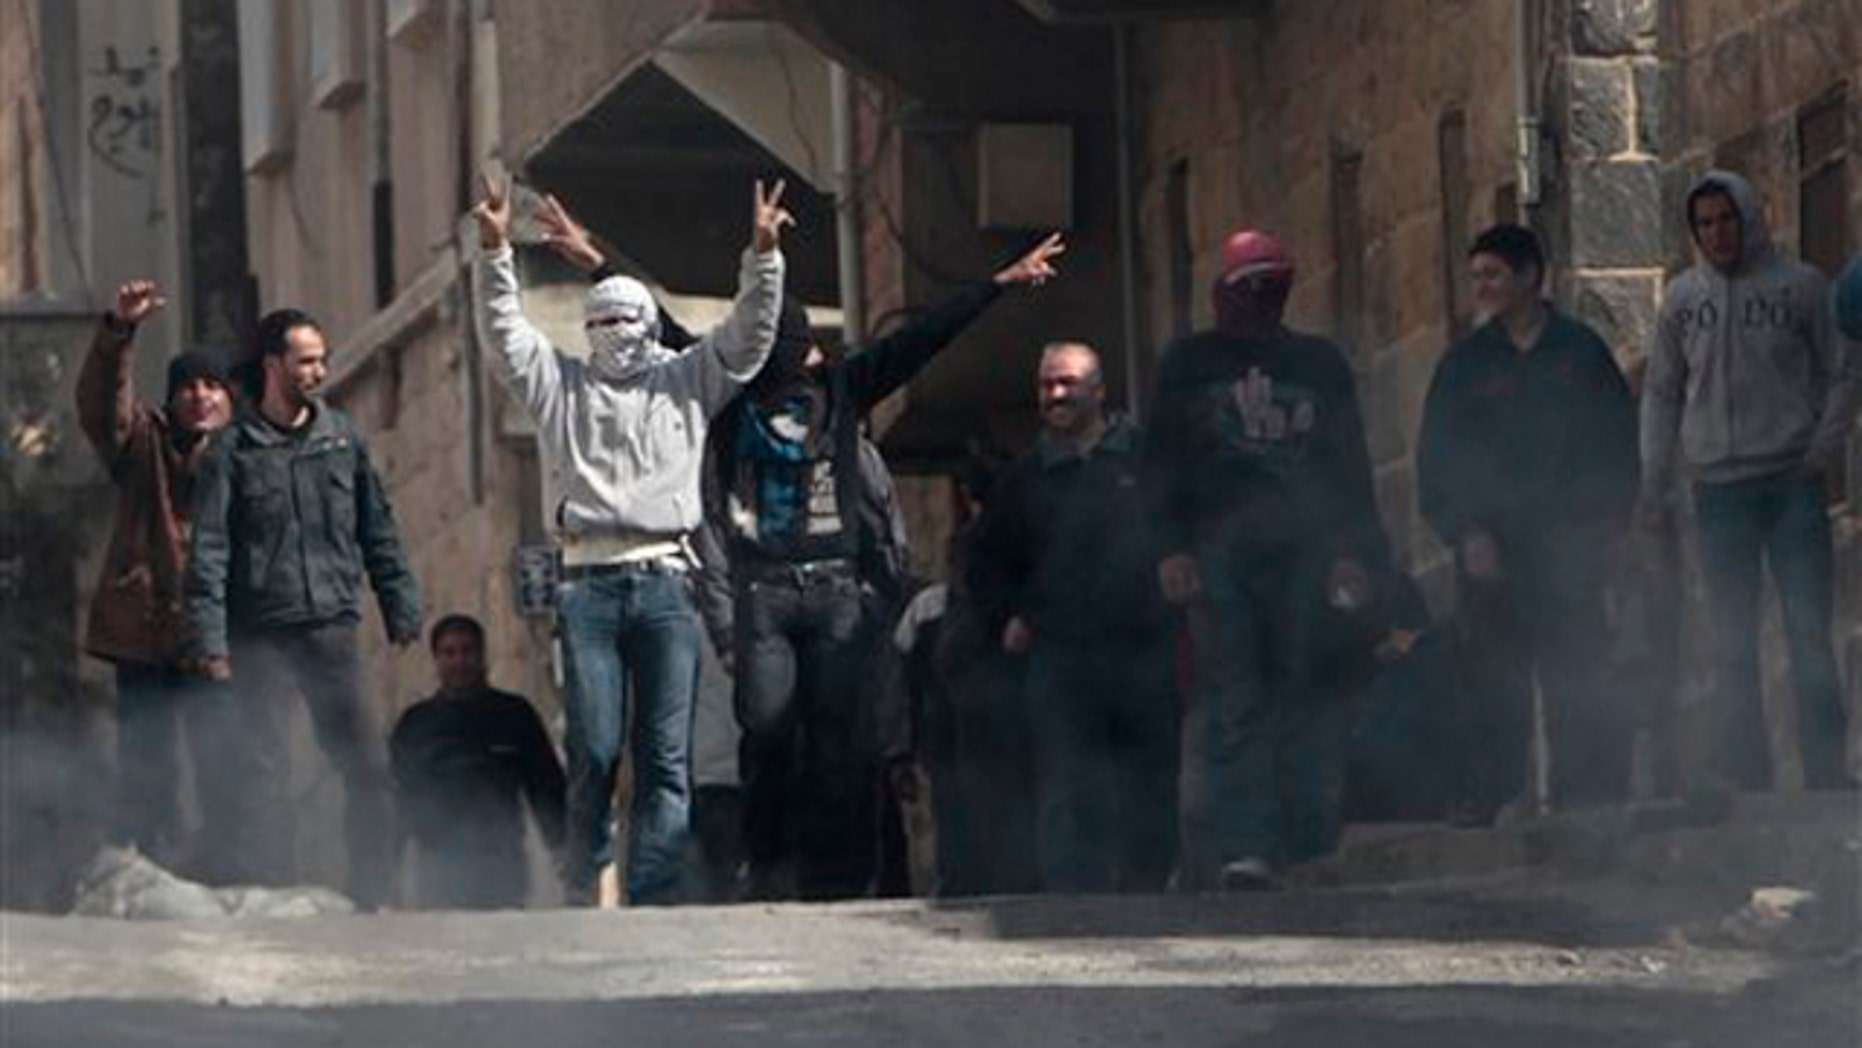 Anti-Syrian government protesters flash V sign as they protest in the southern city of Daraa, Syria, March 23.